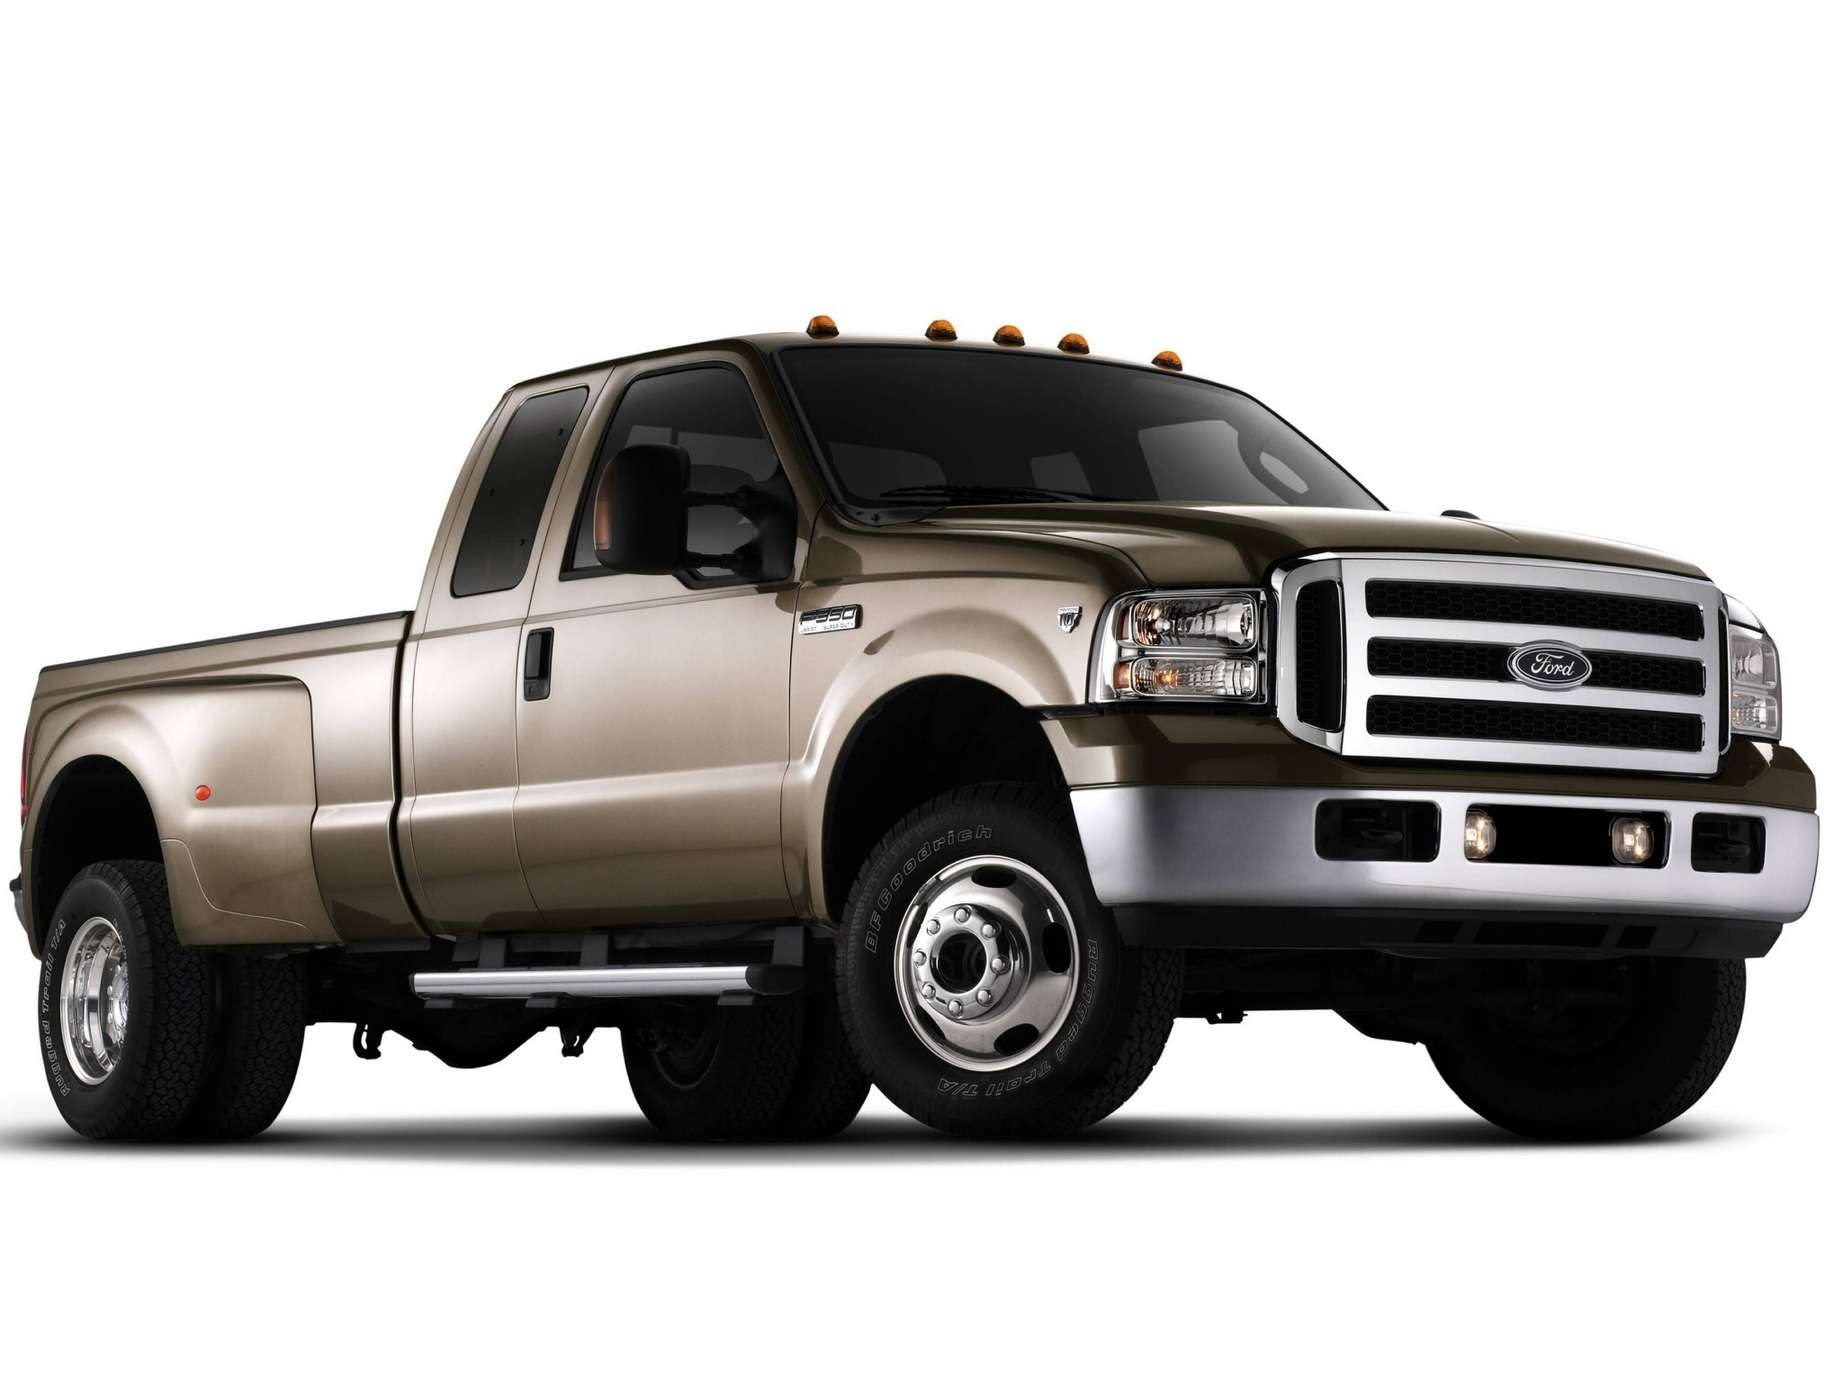 Ford F-350 Super Duty #8648053